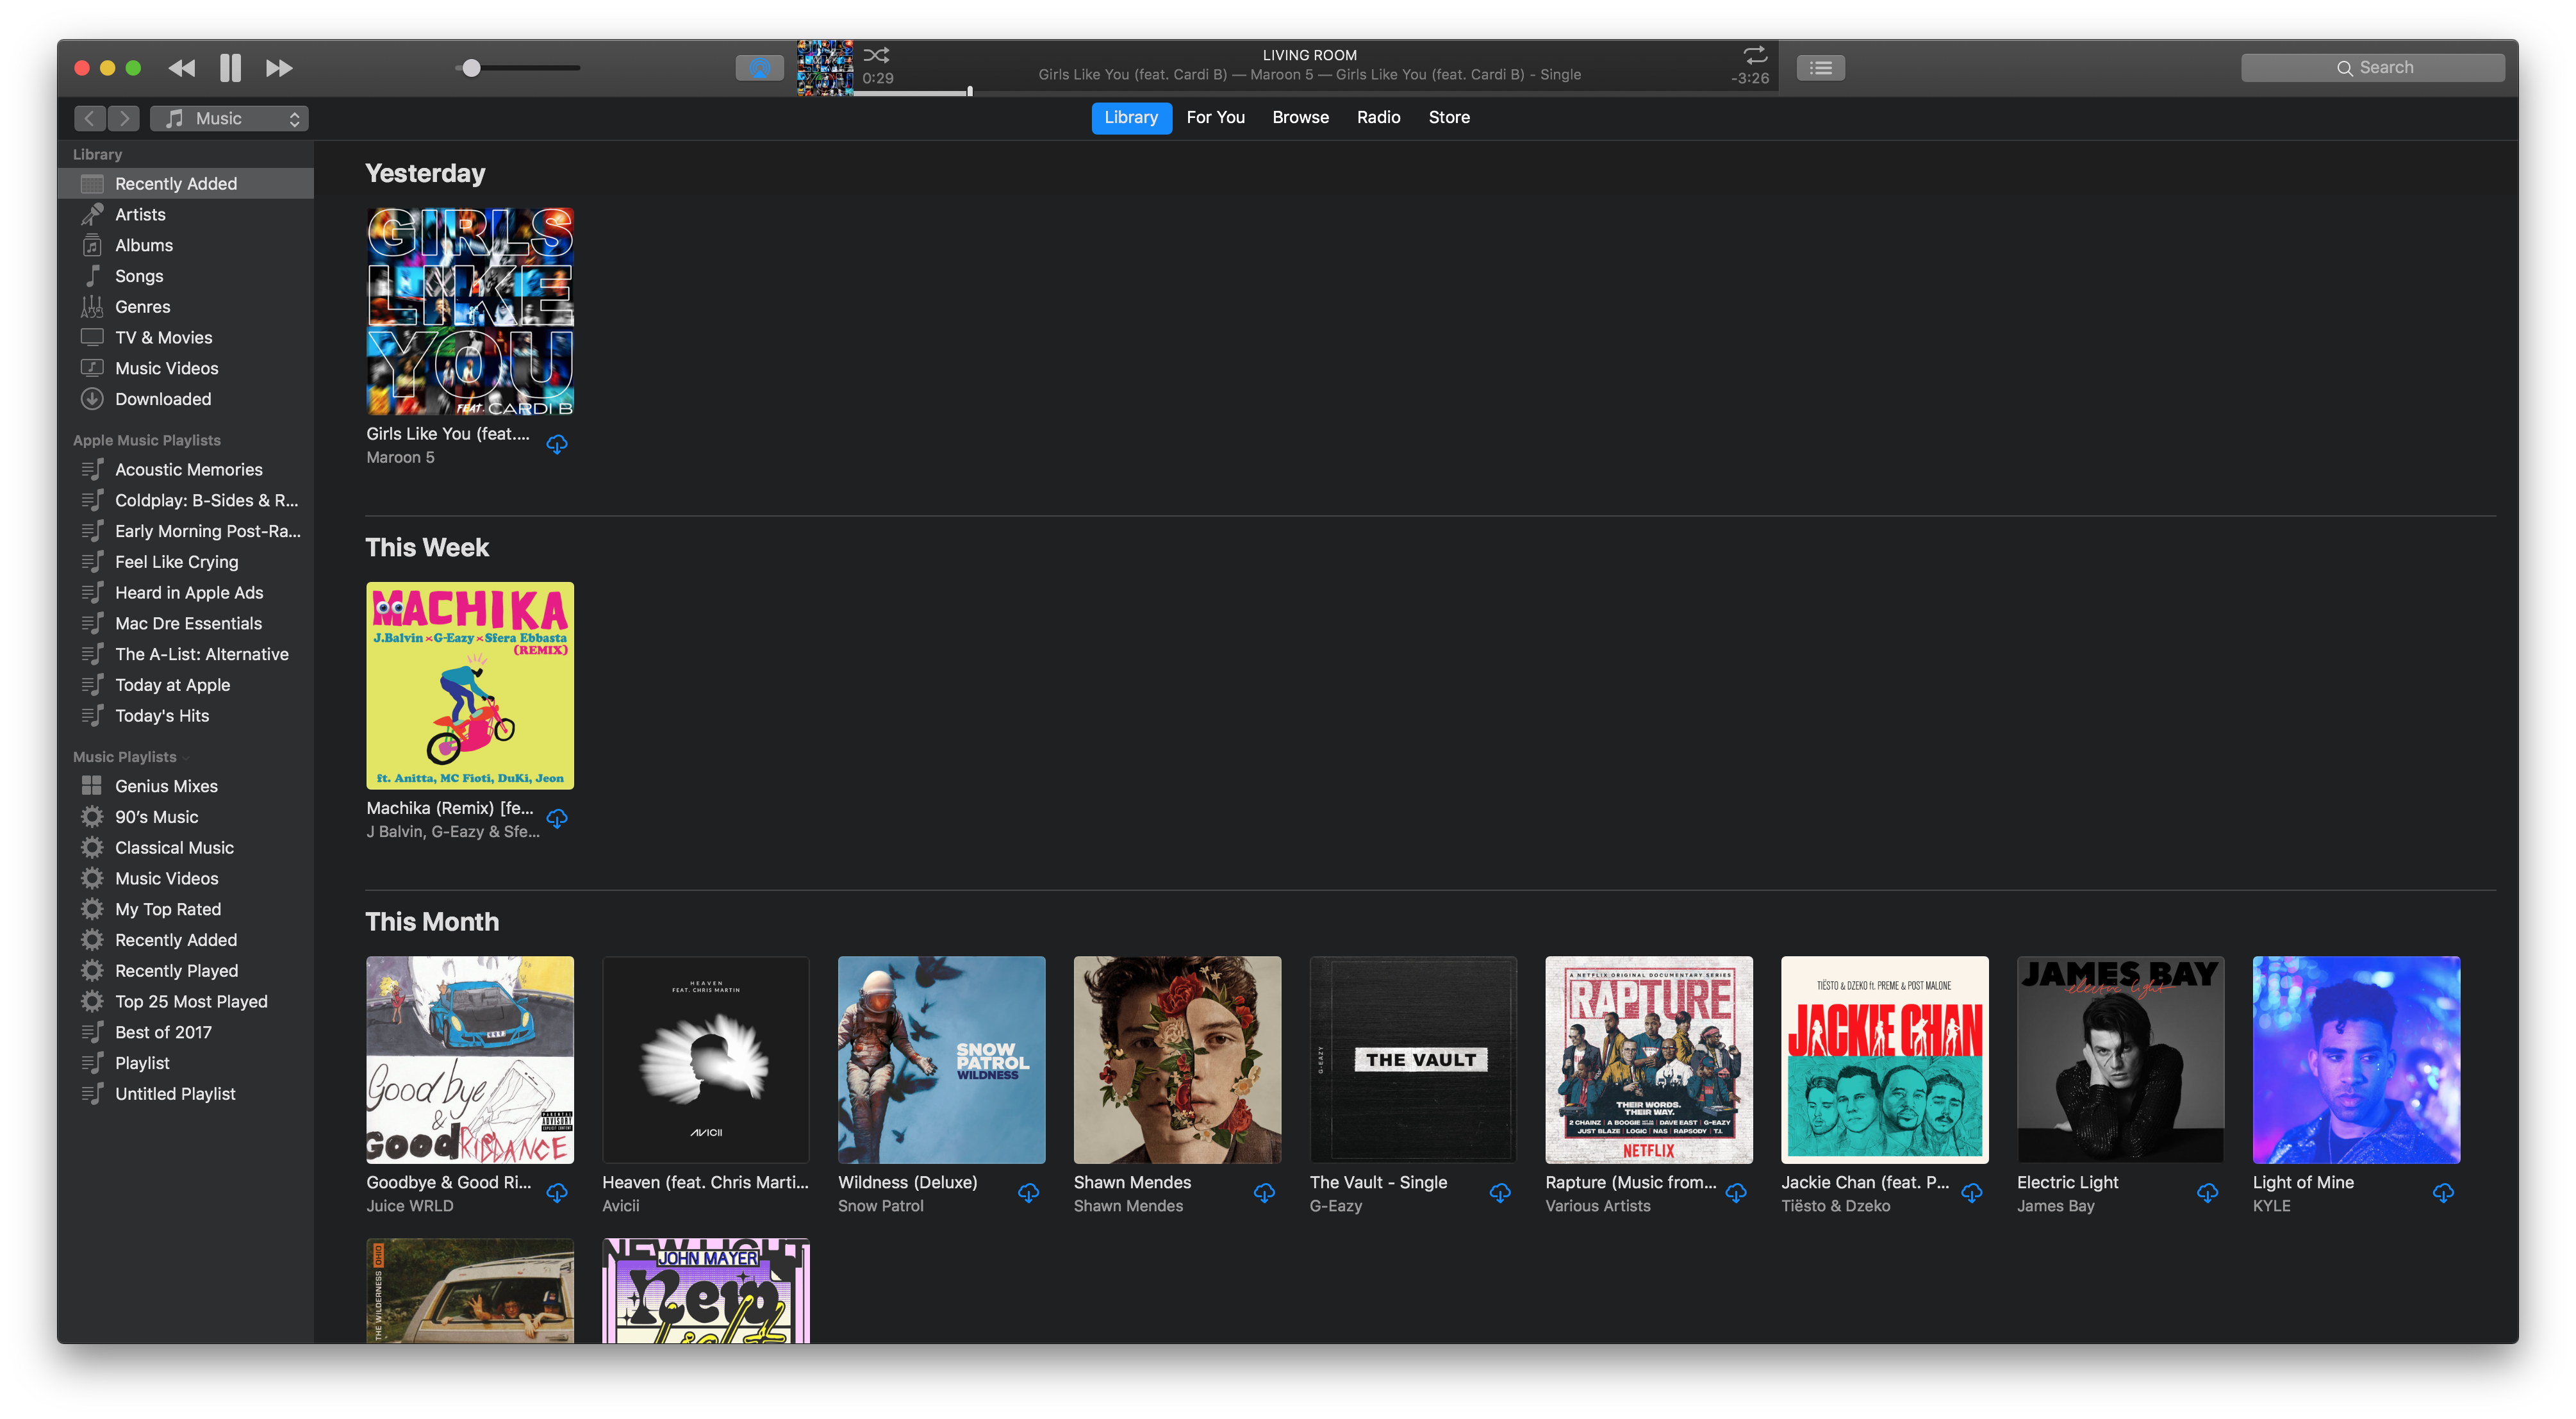 Hands-on with dark mode in macOS 10 14 Mojave [Gallery] - 9to5Mac